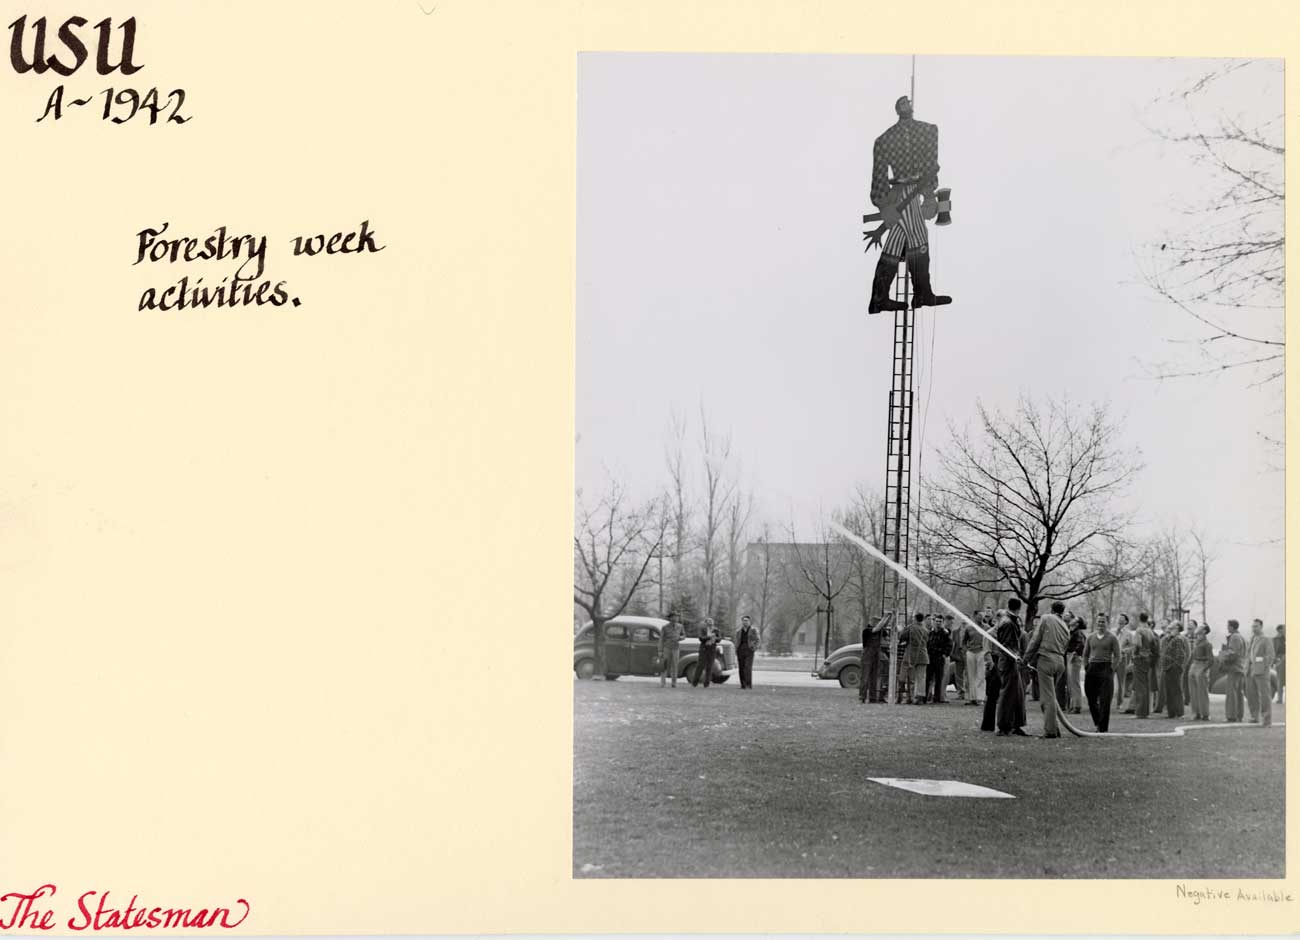 A black and white image from 1942 of a wooden Paul Bunyan statue atop a ladder. A group of men is using a firehose to keep people away while they figure out how to get Bunyan down.